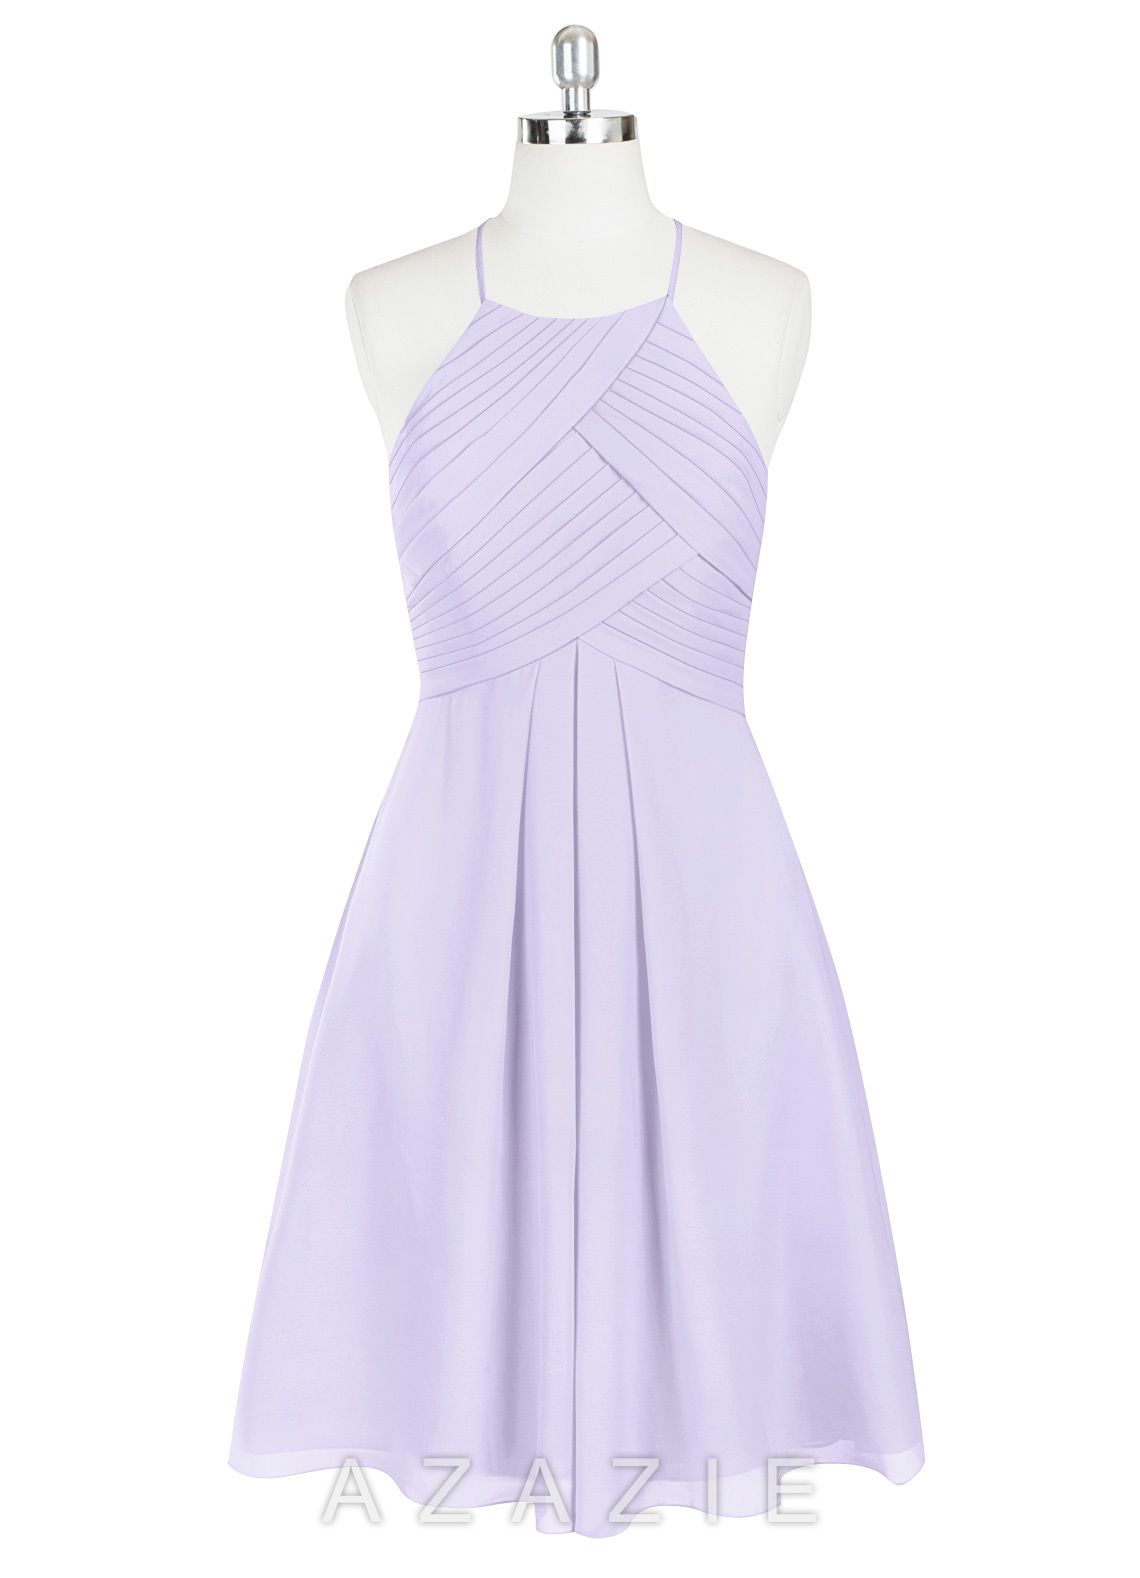 3f766aea29c Shop Azazie Bridesmaid Dress - Adriana in Chiffon. Find the perfect made-to-